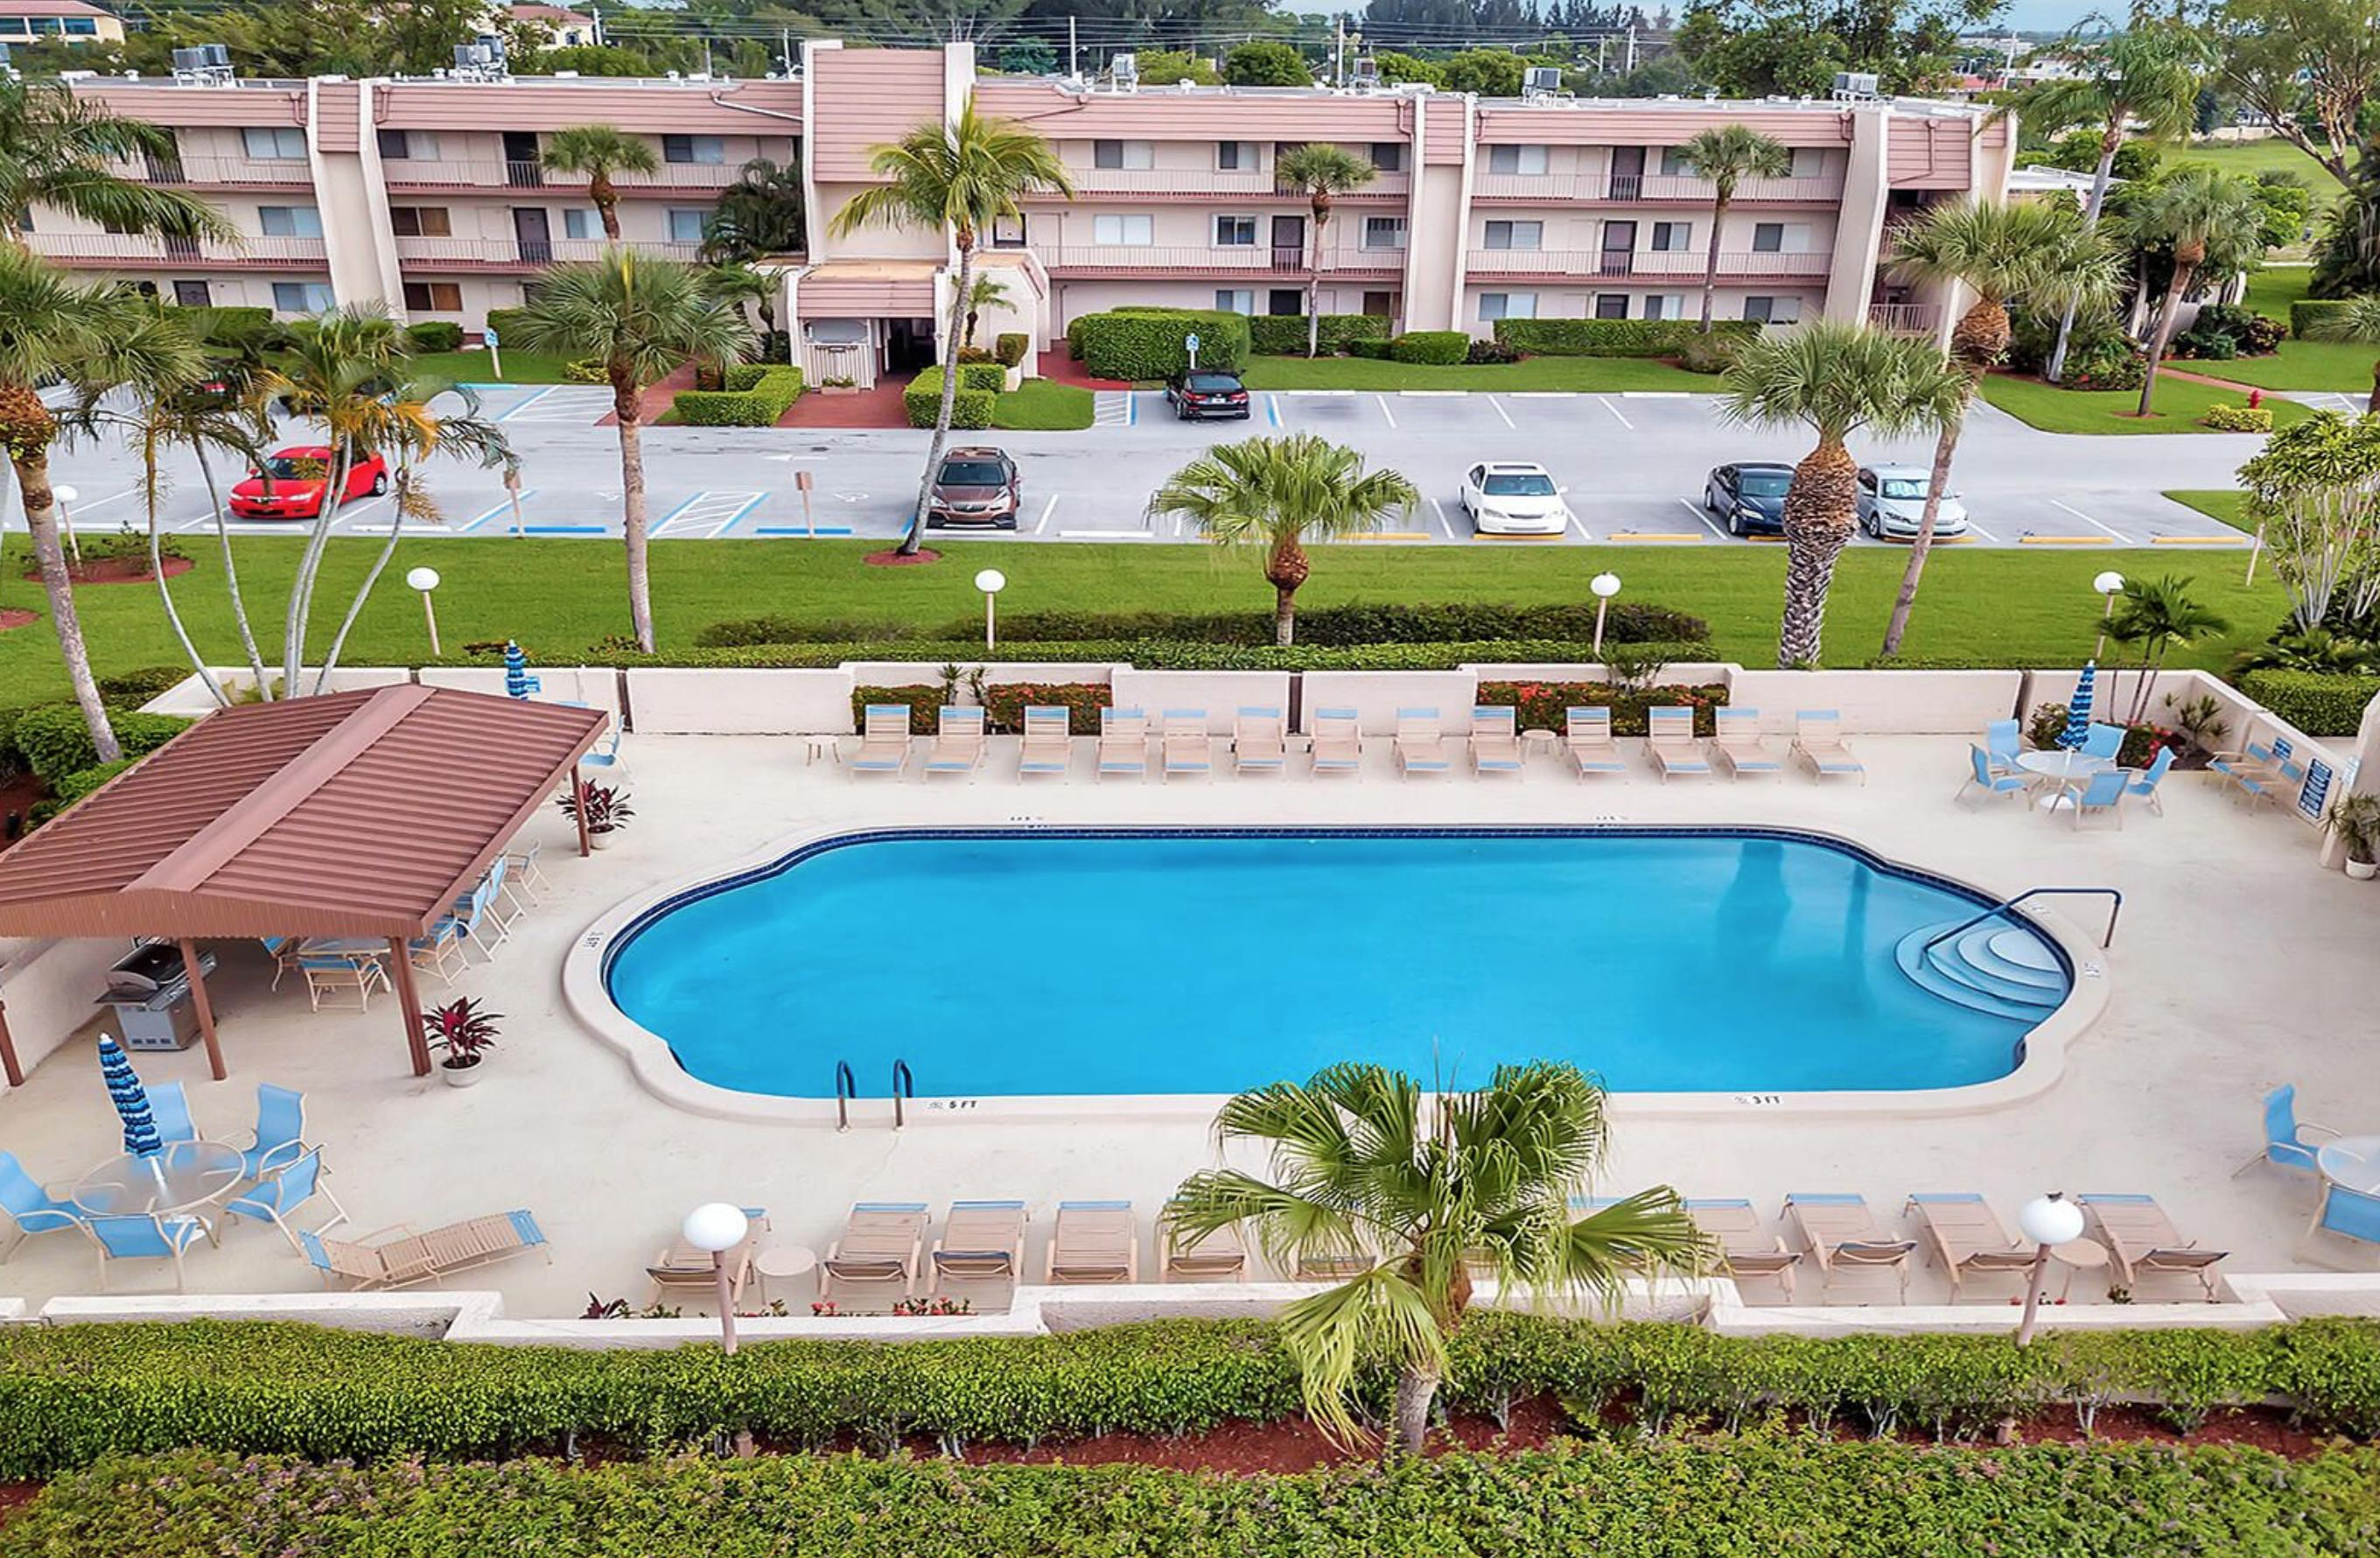 Home for sale in D'este Court - Fountains Of The Palm Beaches Lake Worth Florida